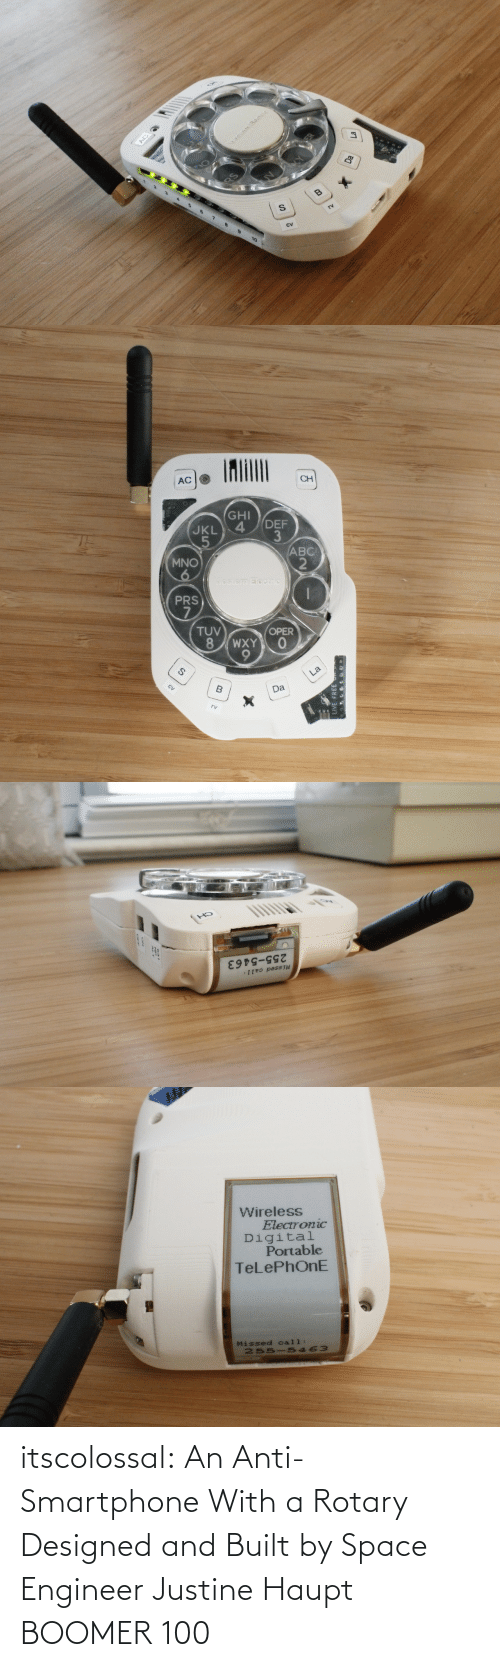 Tumblr, Blog, and Space: itscolossal:  An Anti-Smartphone With a Rotary Designed and Built by Space Engineer Justine Haupt   BOOMER 100